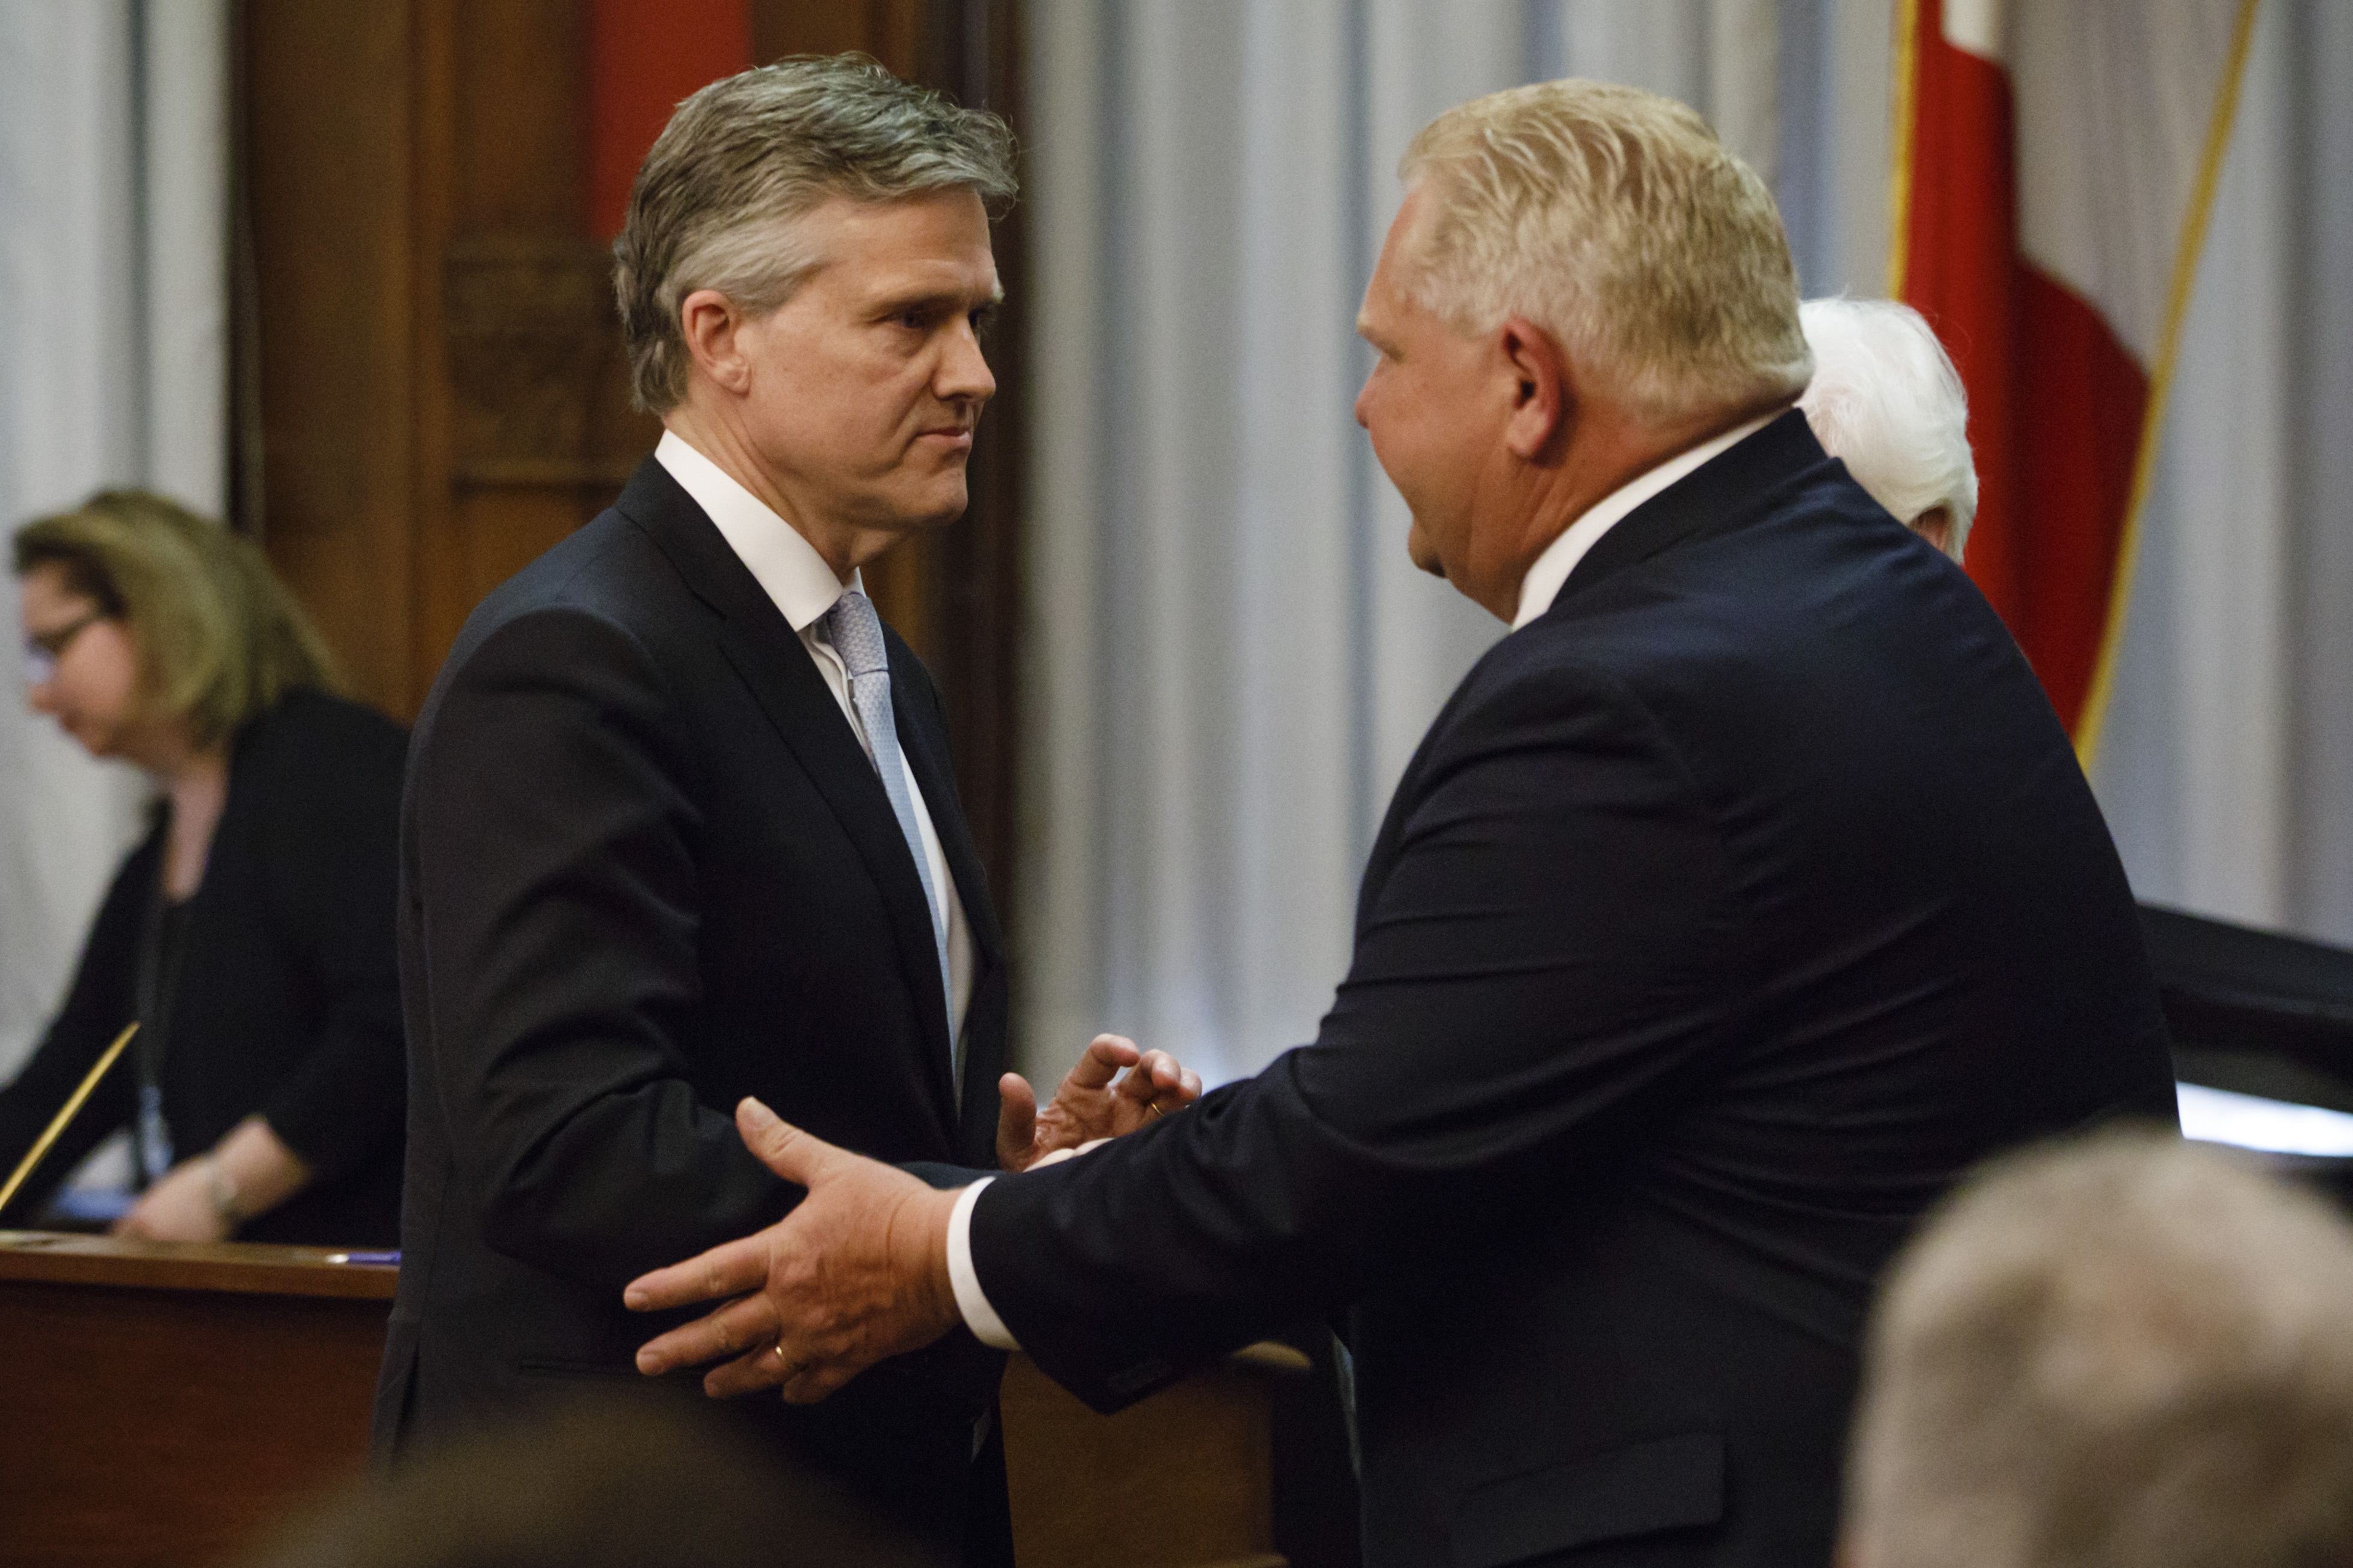 Doug Ford government pauses spending cuts, proposes tax cut